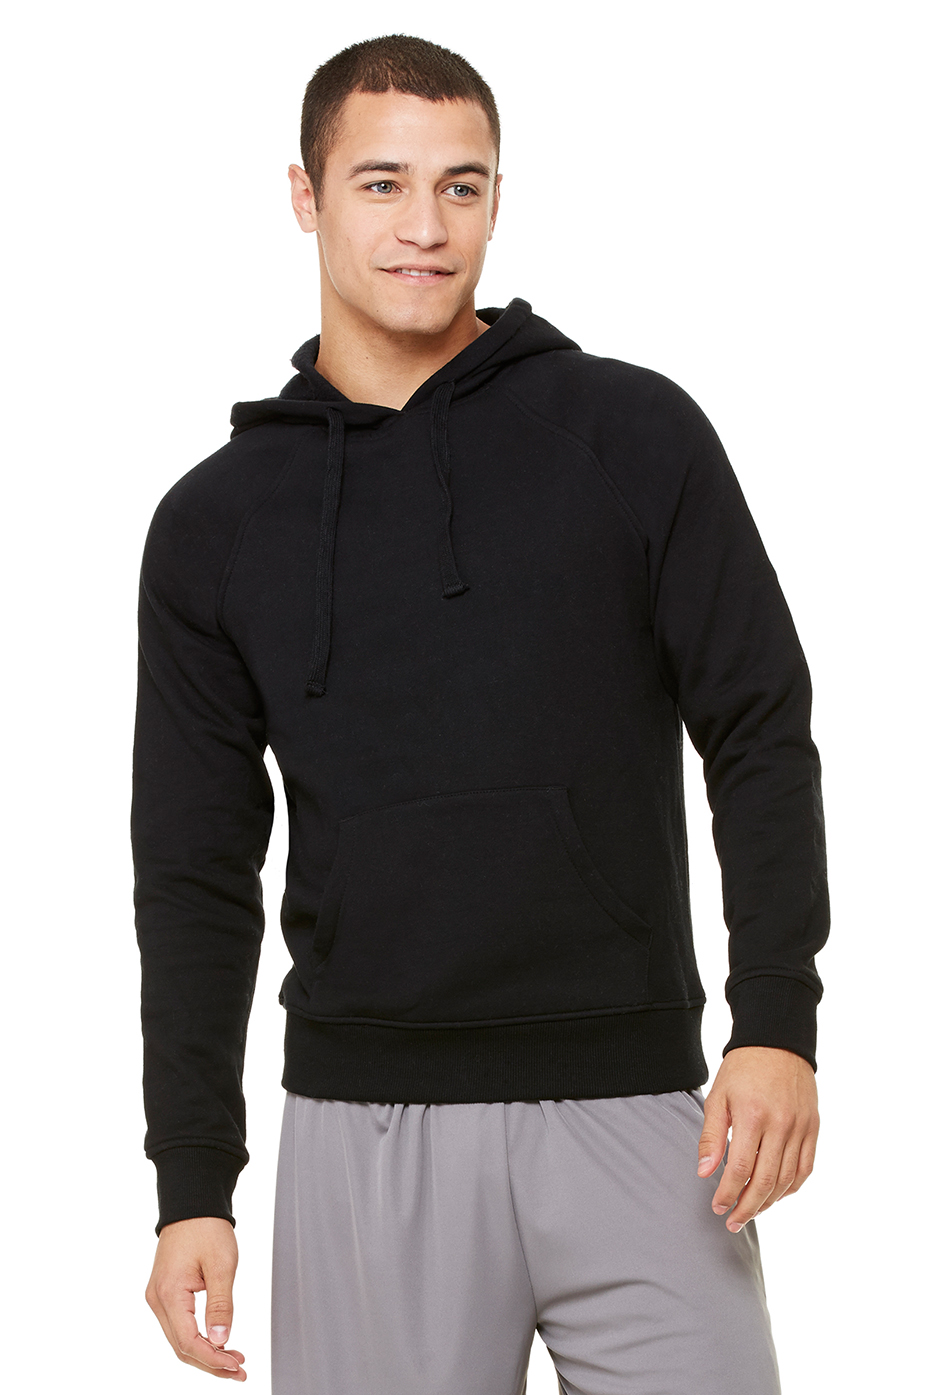 All Sport Unisex Performance Fleece Pullover Hoodie | Bella-Canvas